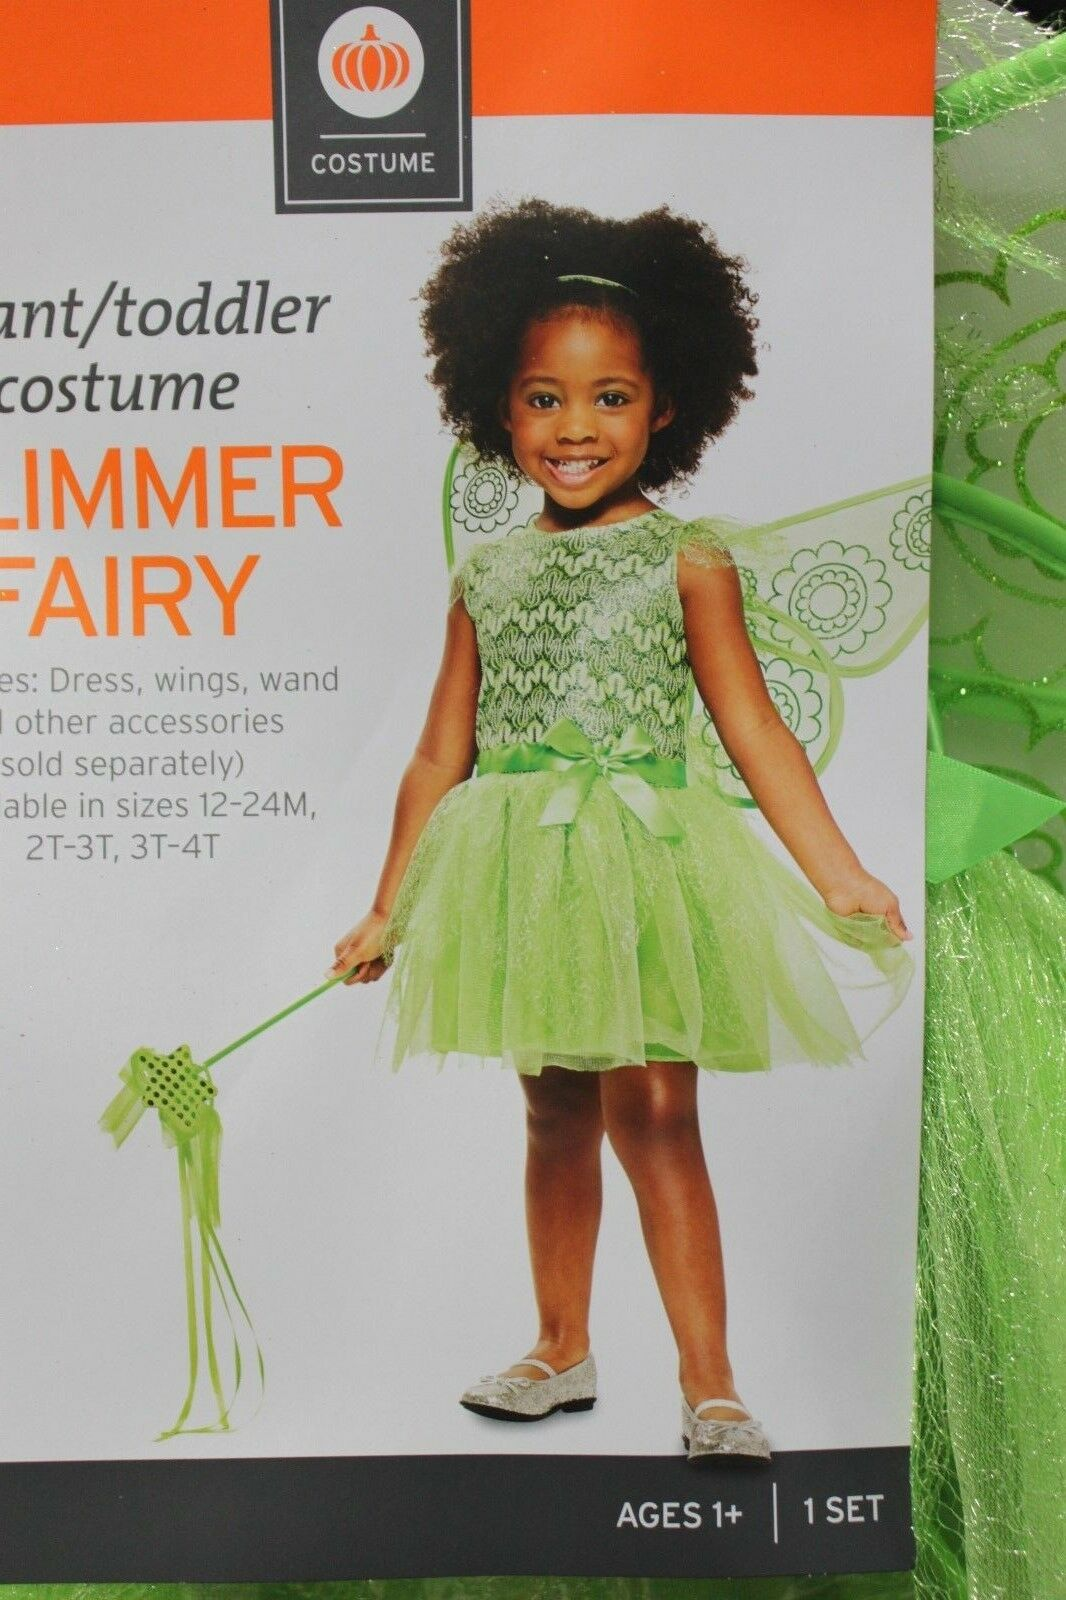 GLIMMER FAIRY GIRLS COSTUME Toddler Green Wings Wand Princess Dress Up Cute NEW